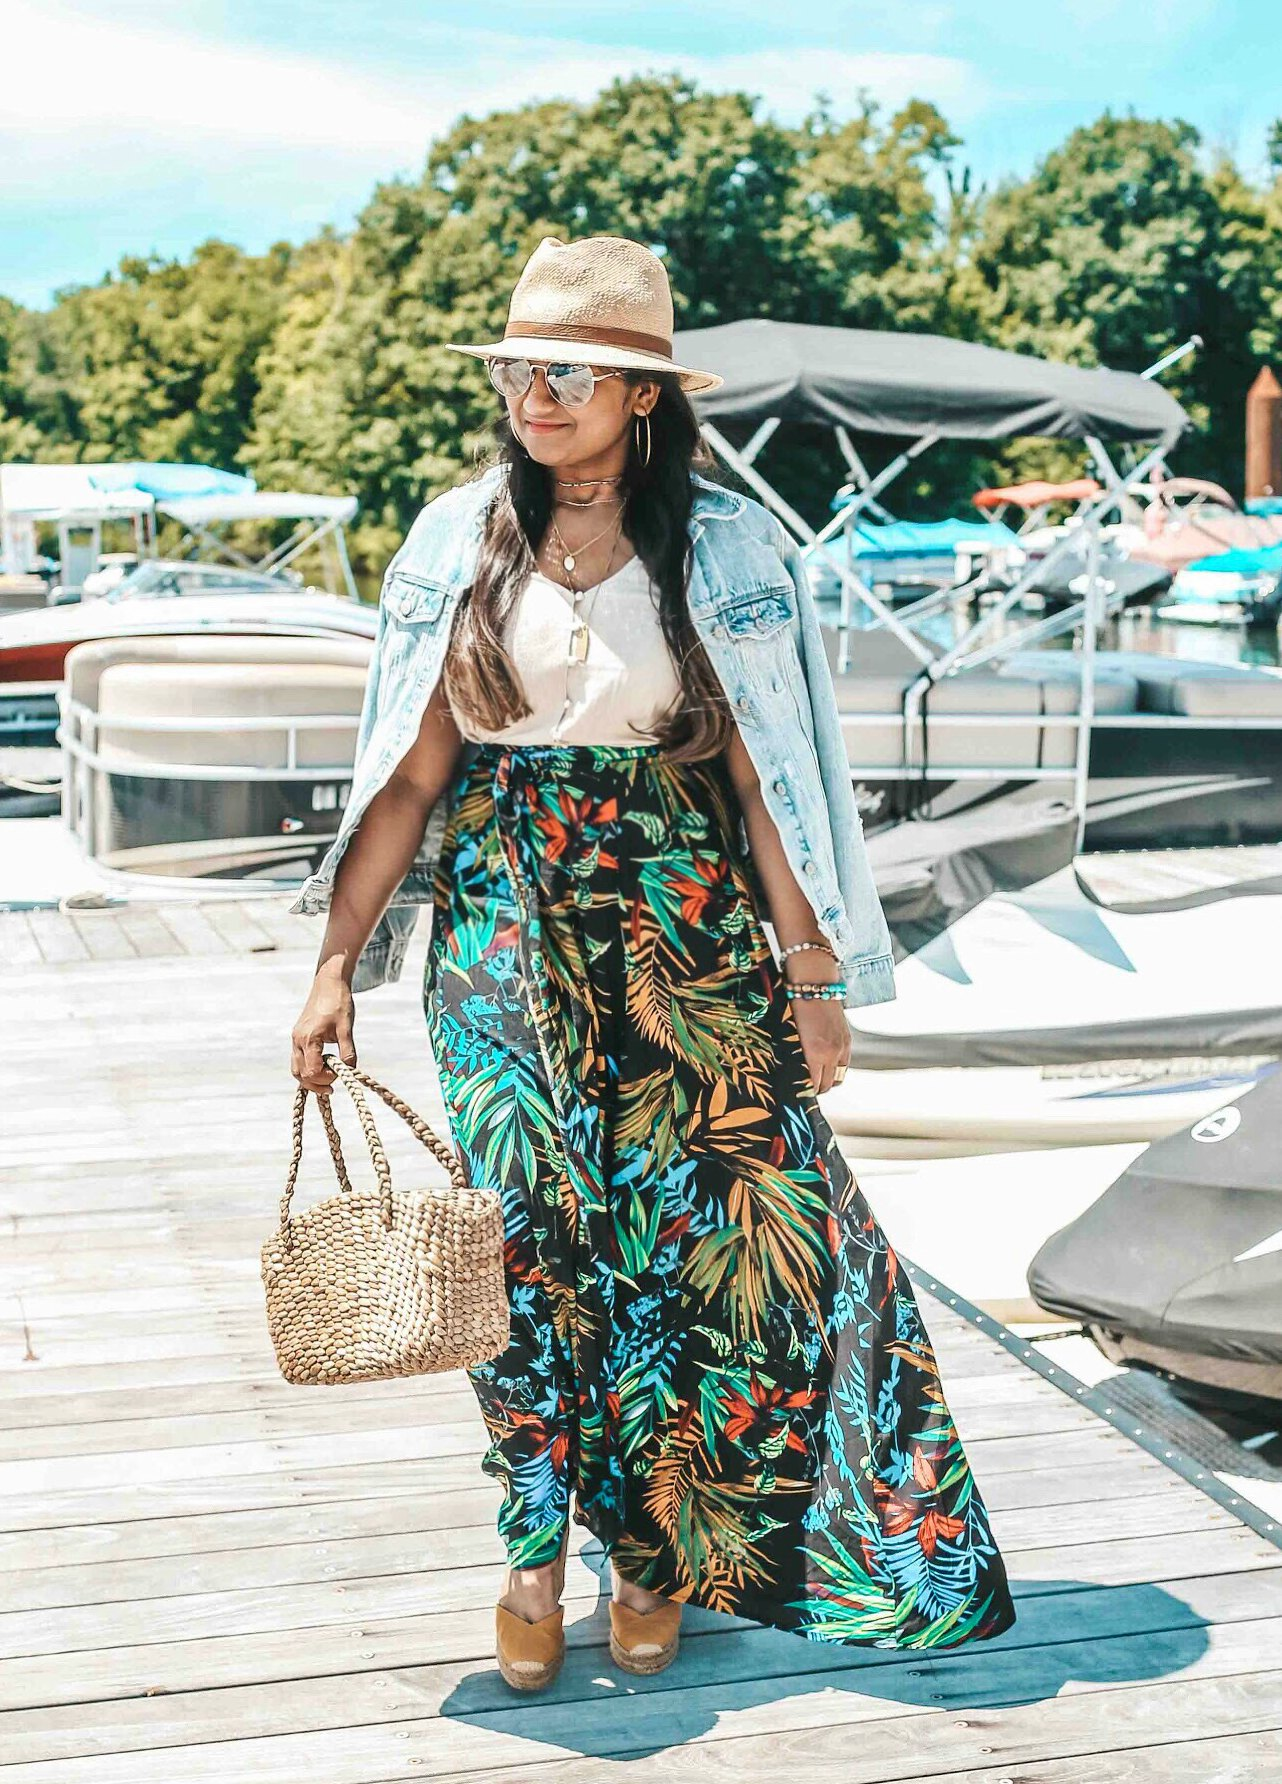 Popular US Modest Fashion blogger, Dreaming Loud, wearing Shein Tropical Print Self Tie Wrap Skirt with Castaner carina wedges - Shein Tropical Print Skirt featured by popular US modest fashion blogger, Dreaming Loud